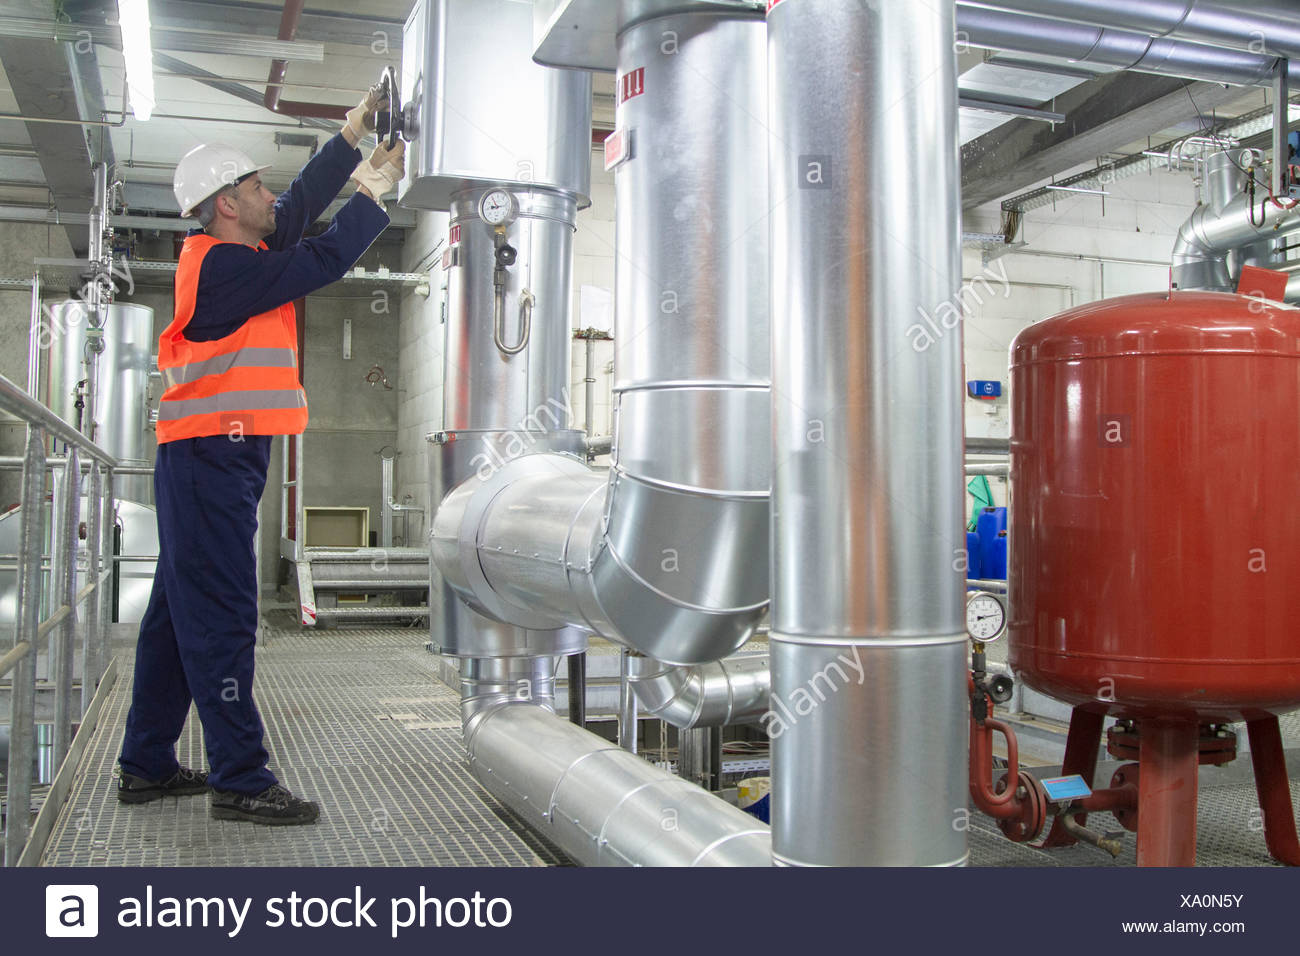 Technician reaching to check pipes in power station - Stock Image